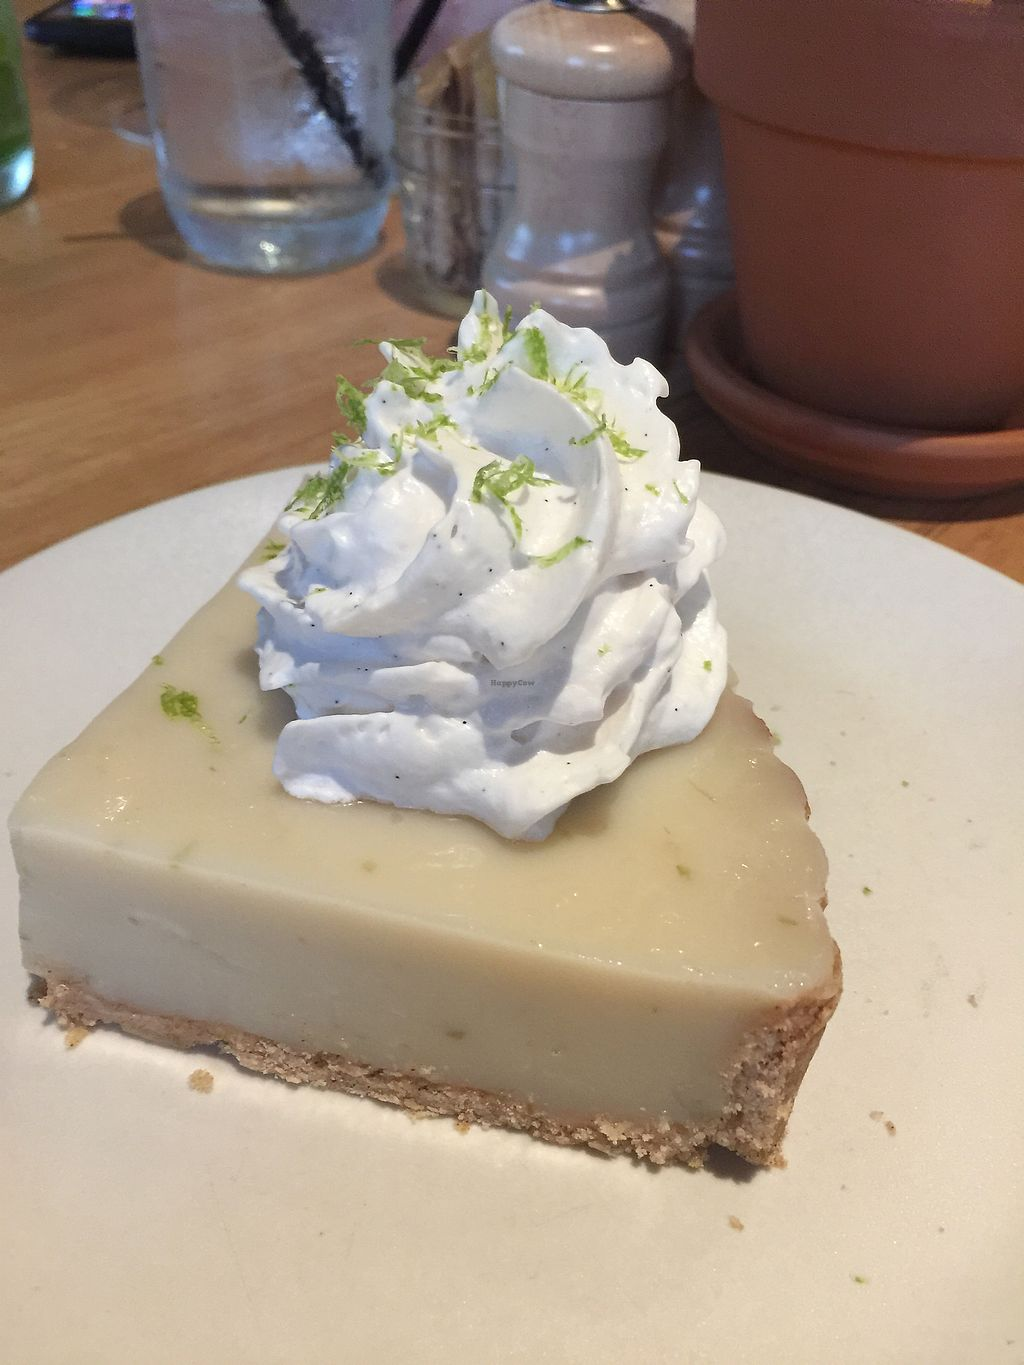 """Photo of True Food Kitchen  by <a href=""""/members/profile/ACCVeg"""">ACCVeg</a> <br/>Key Lime Pie! <br/> August 1, 2017  - <a href='/contact/abuse/image/97480/287680'>Report</a>"""